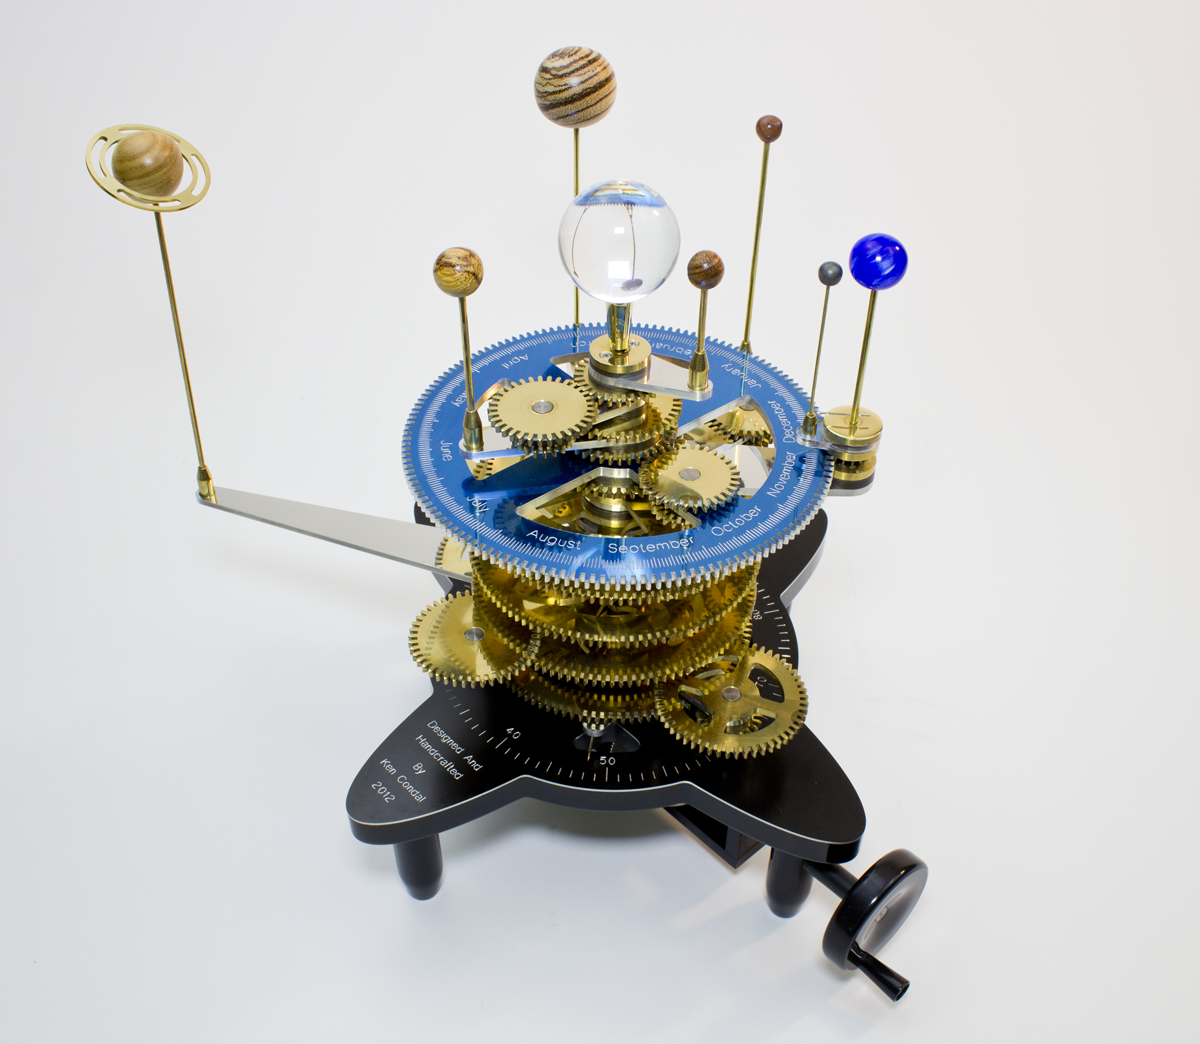 solar system orrery - photo #2